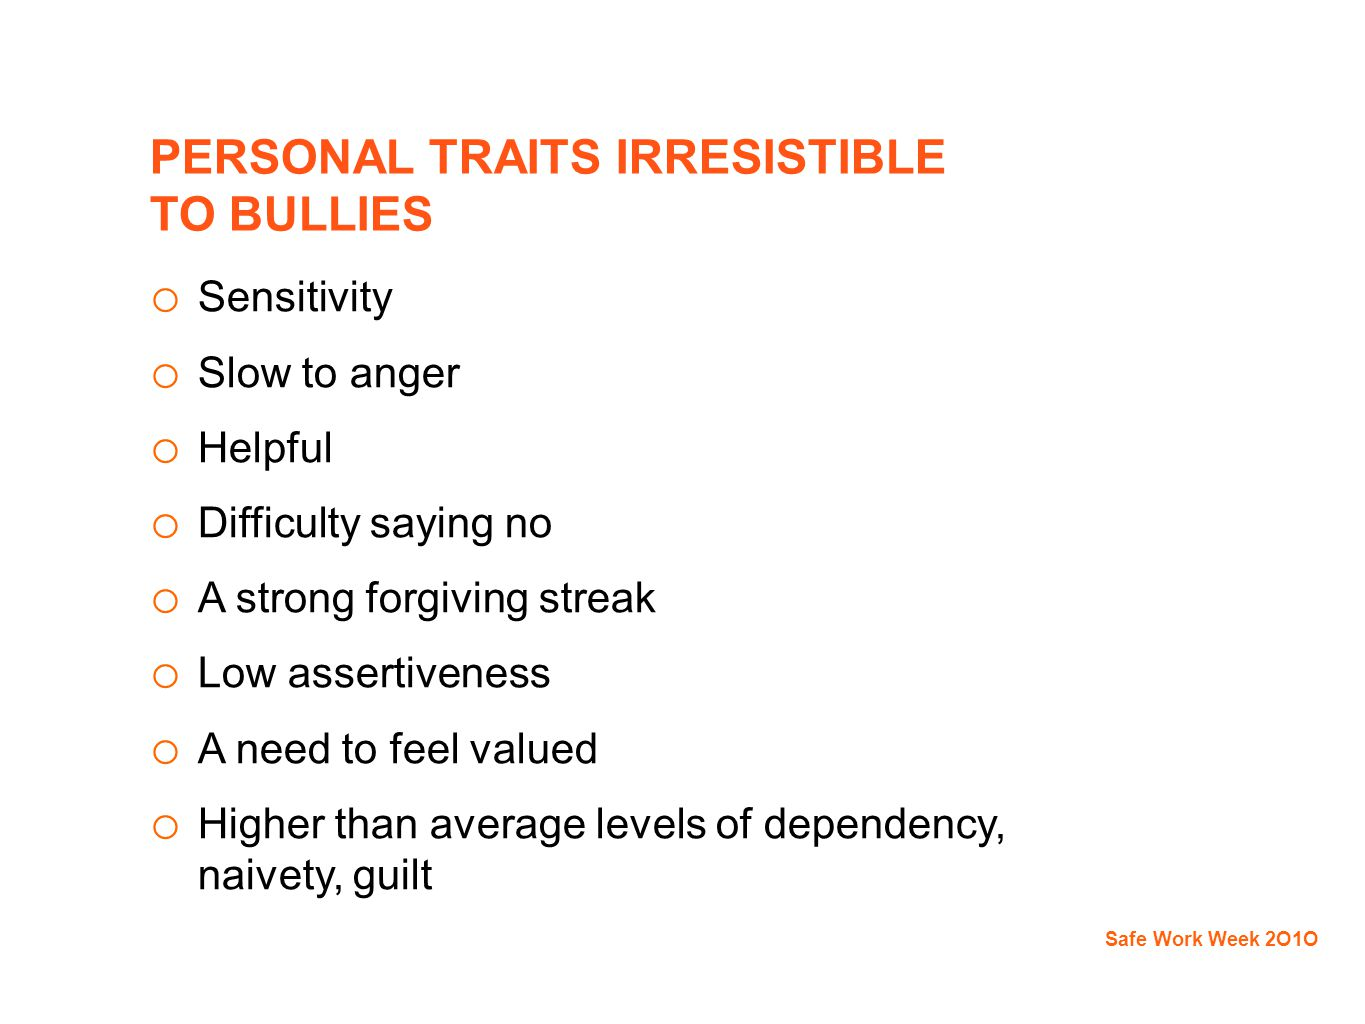 PERSONAL TRAITS IRRESISTIBLE TO BULLIES o Sensitivity o Slow to anger o Helpful o Difficulty saying no o A strong forgiving streak o Low assertiveness o A need to feel valued o Higher than average levels of dependency, naivety, guilt Safe Work Week 2O1O